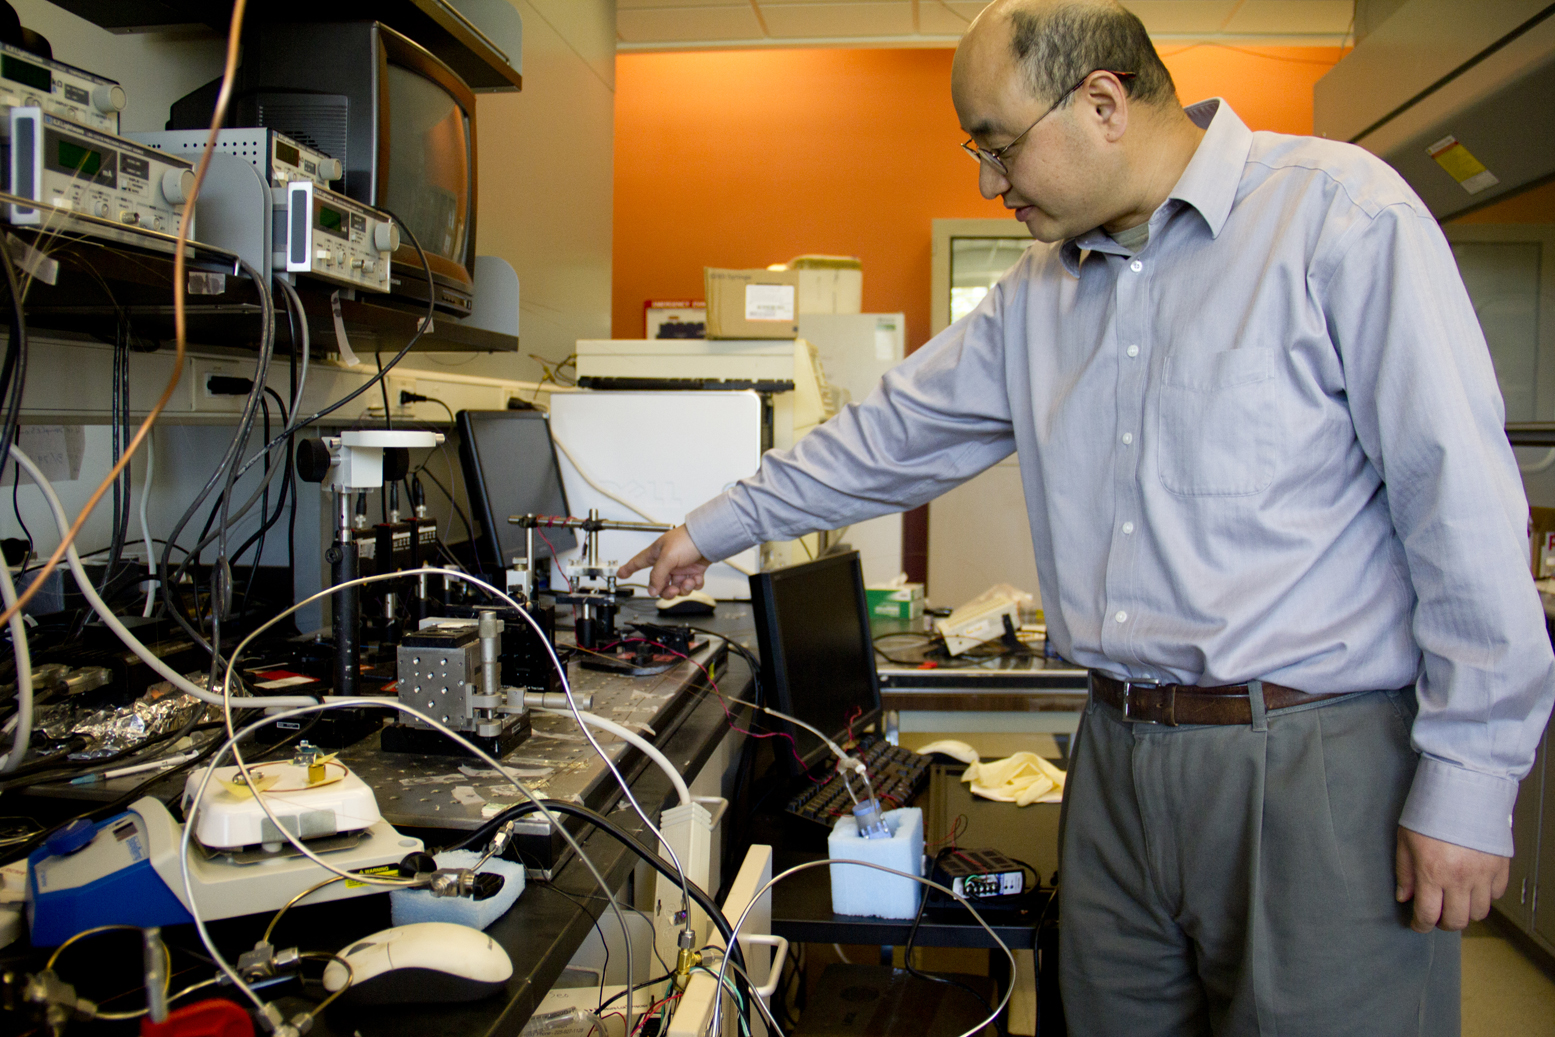 Xudong Fan, an associate professor of biomedical engineering, points to the compressor that is part of the smart, portable gas sensor that he is developing. The device could one day be used to detect chemical weapon vapors or indicators of disease more precisely than current models do. It also consumes less power, which is crucial for stretching battery life in a mineshaft or an isolated clinic. Image credit: Joseph Xu, College of Engineering